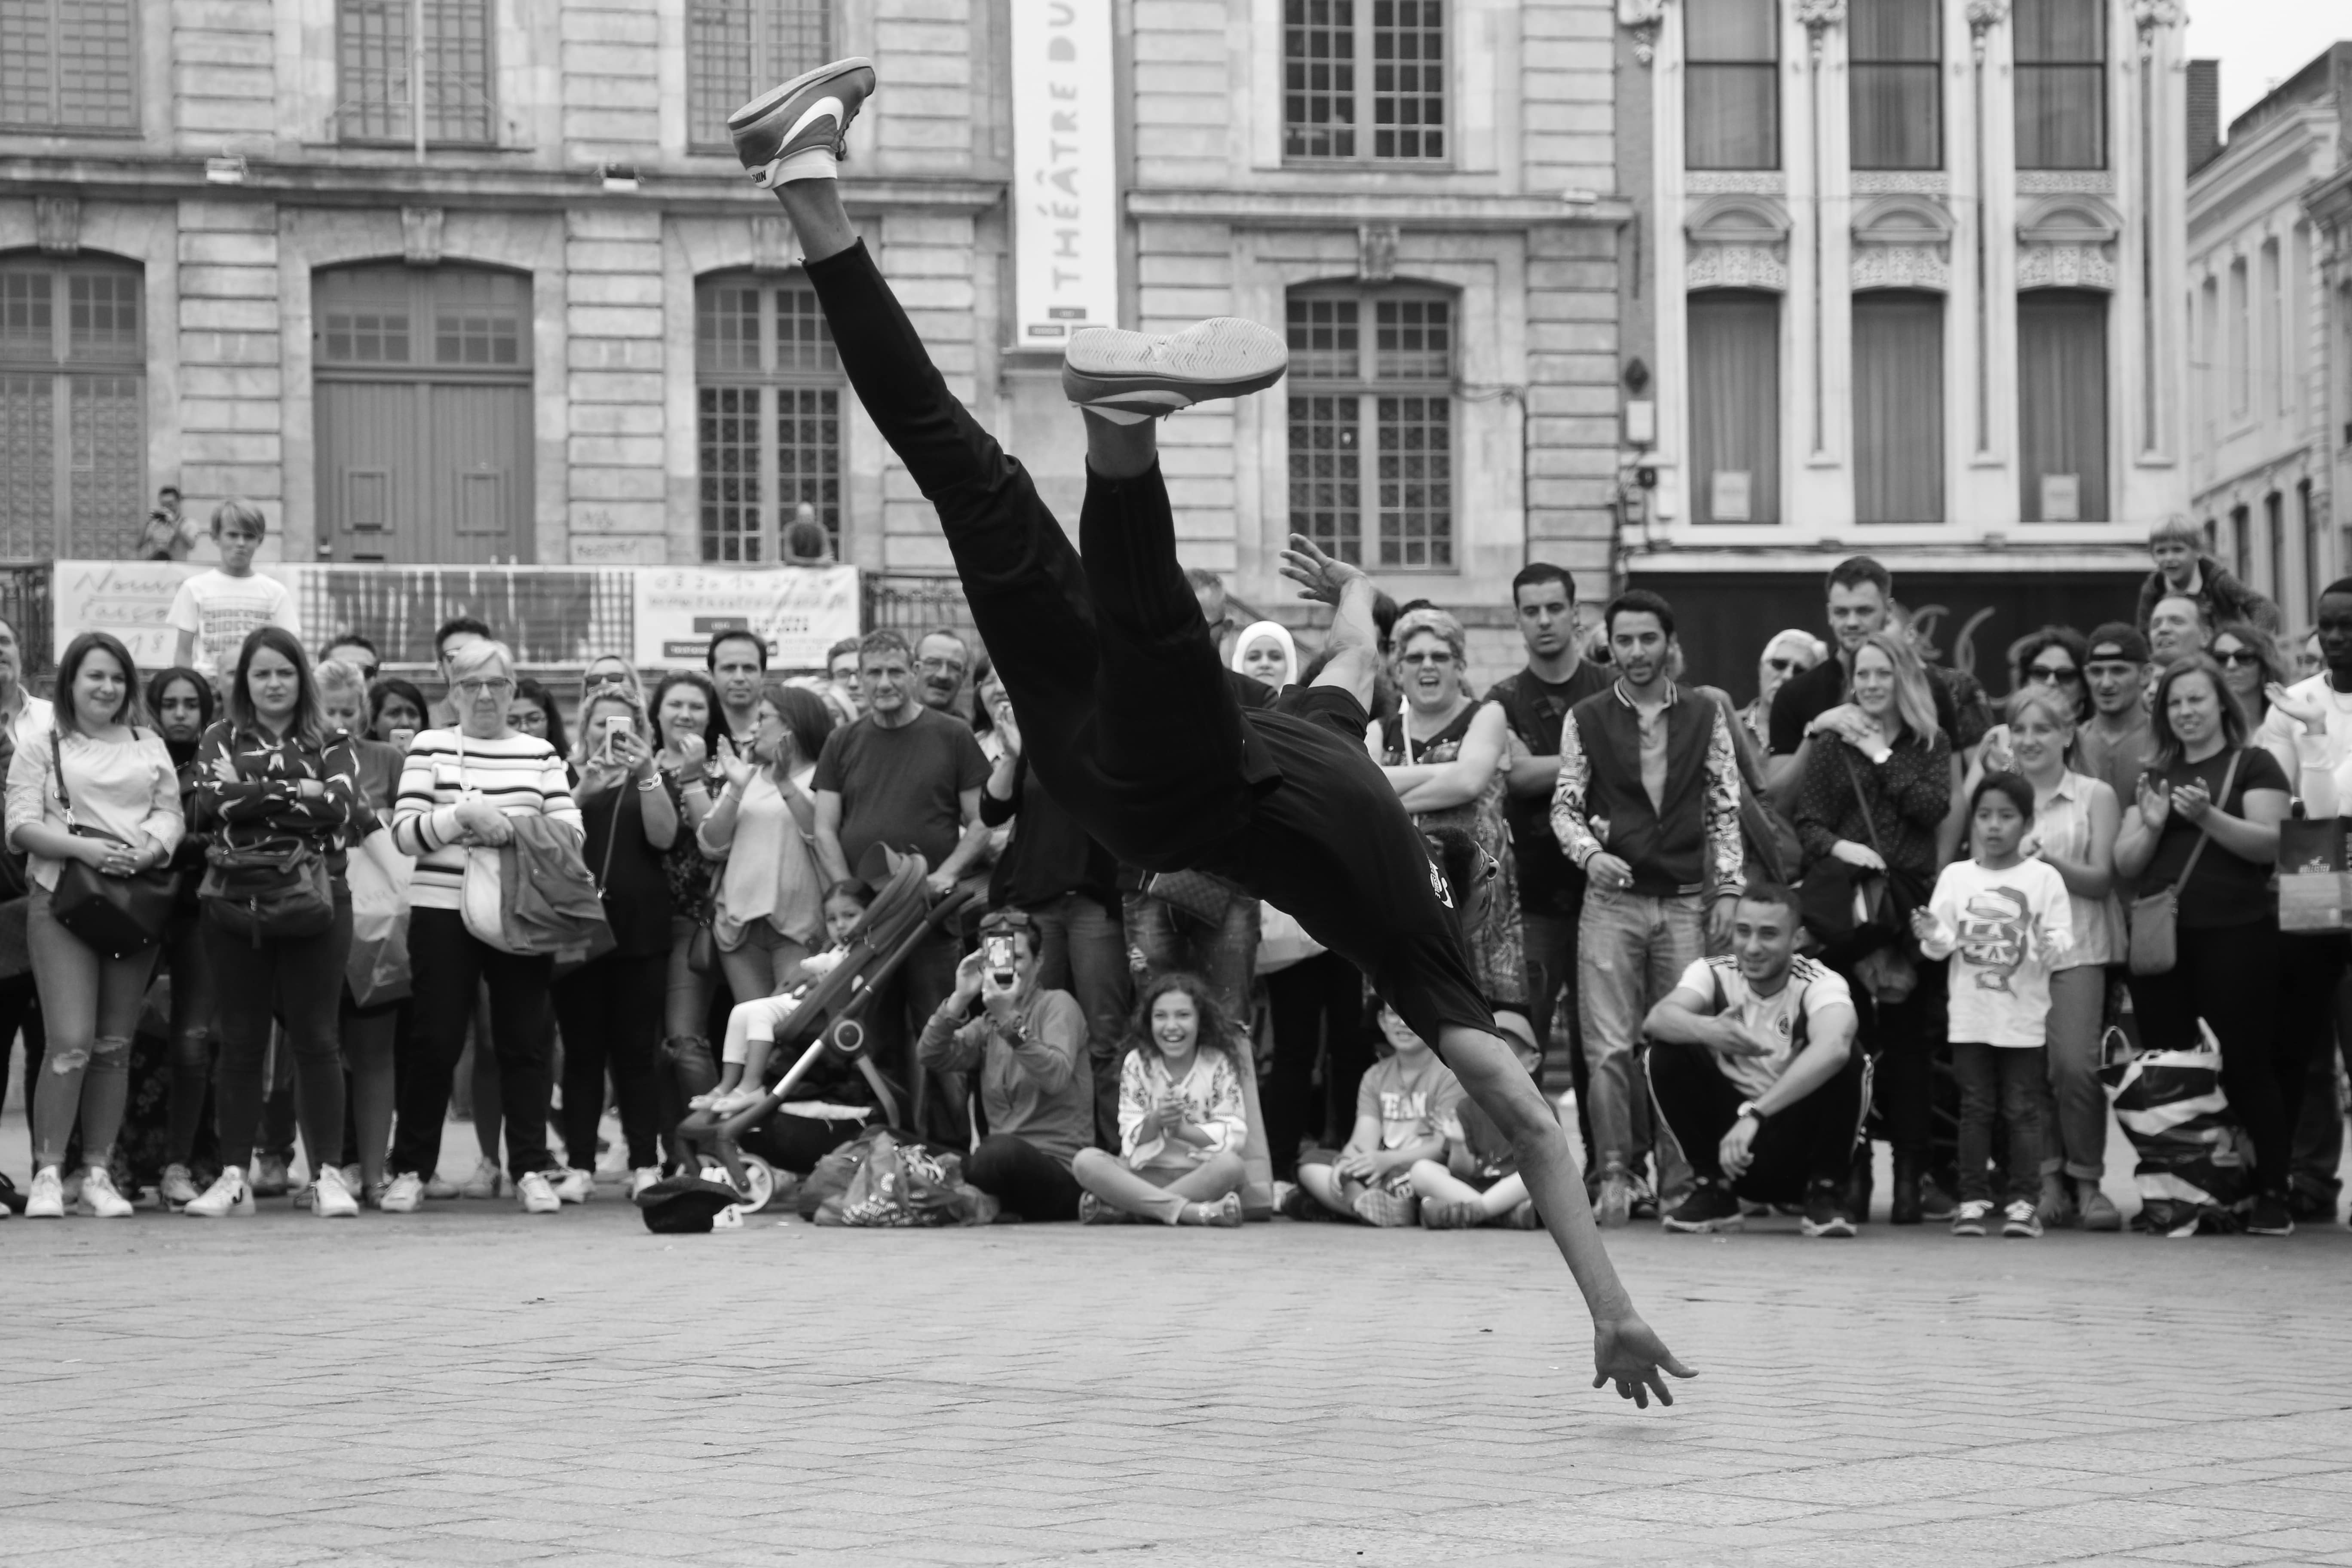 Breakdance spectacle france - Streetsmile